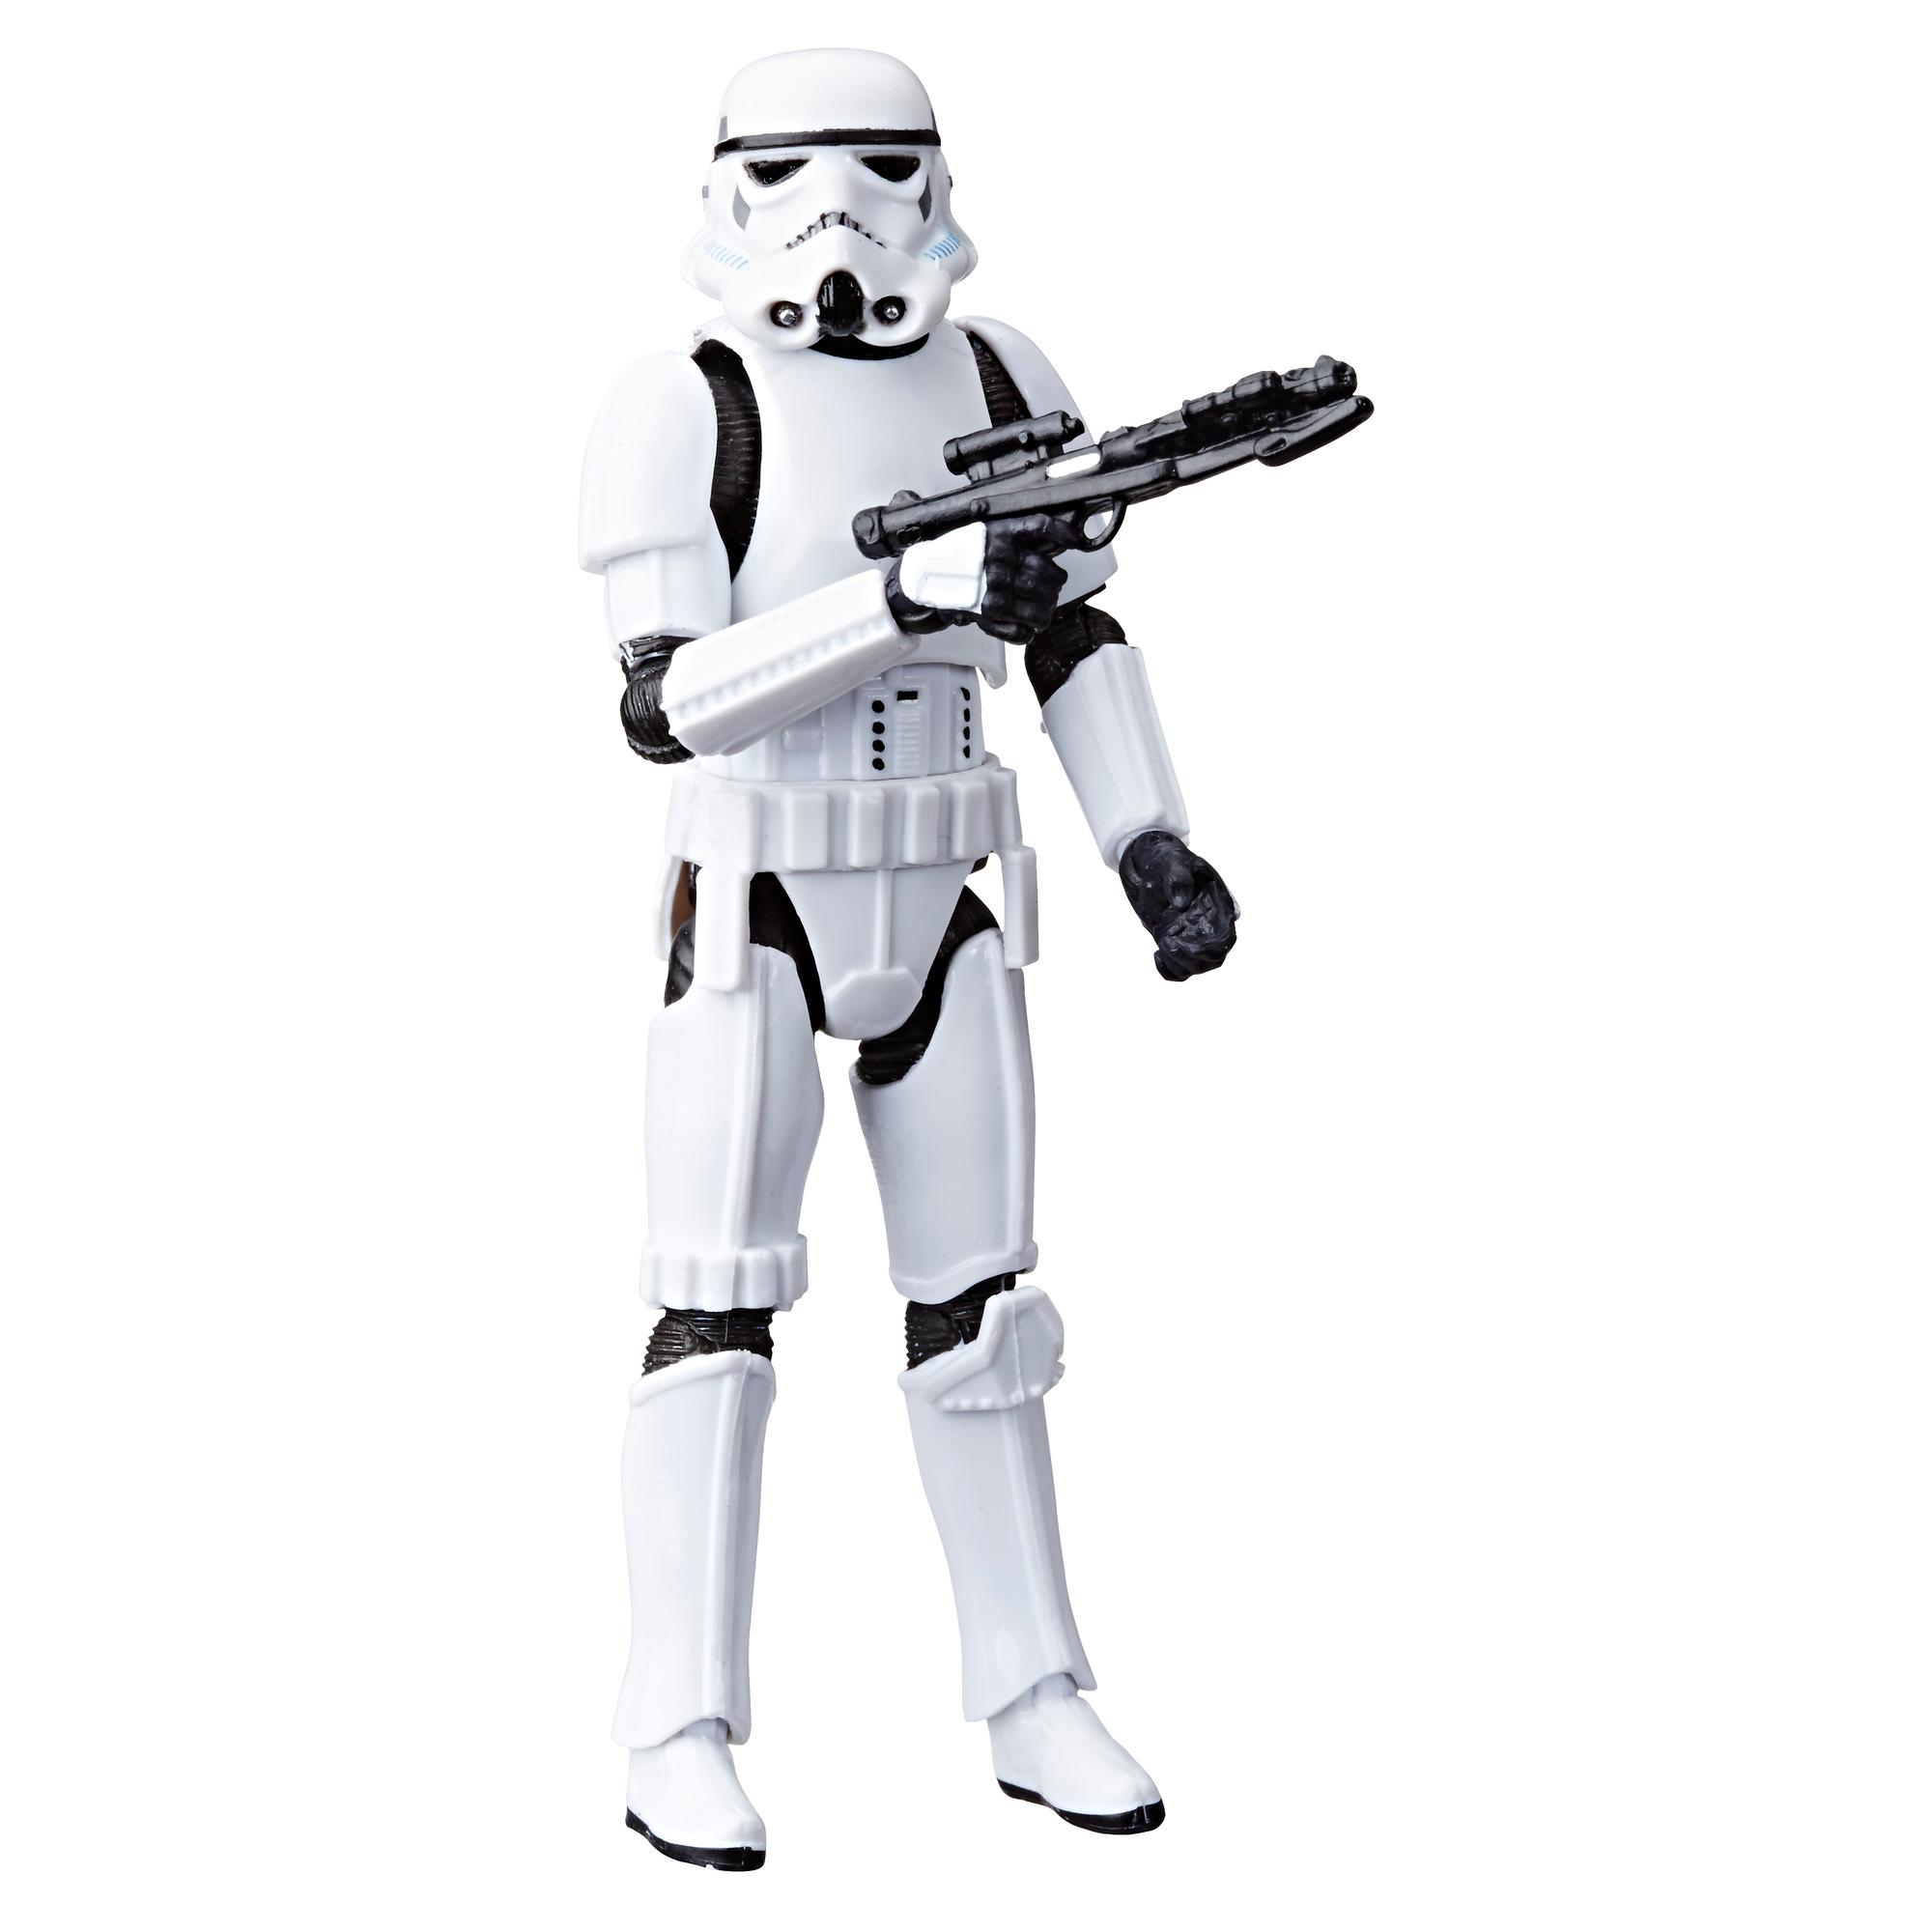 Star Wars The Vintage Collection Rogue One: A Star Wars Story Imperial Stormtrooper 3.75-inch Figure